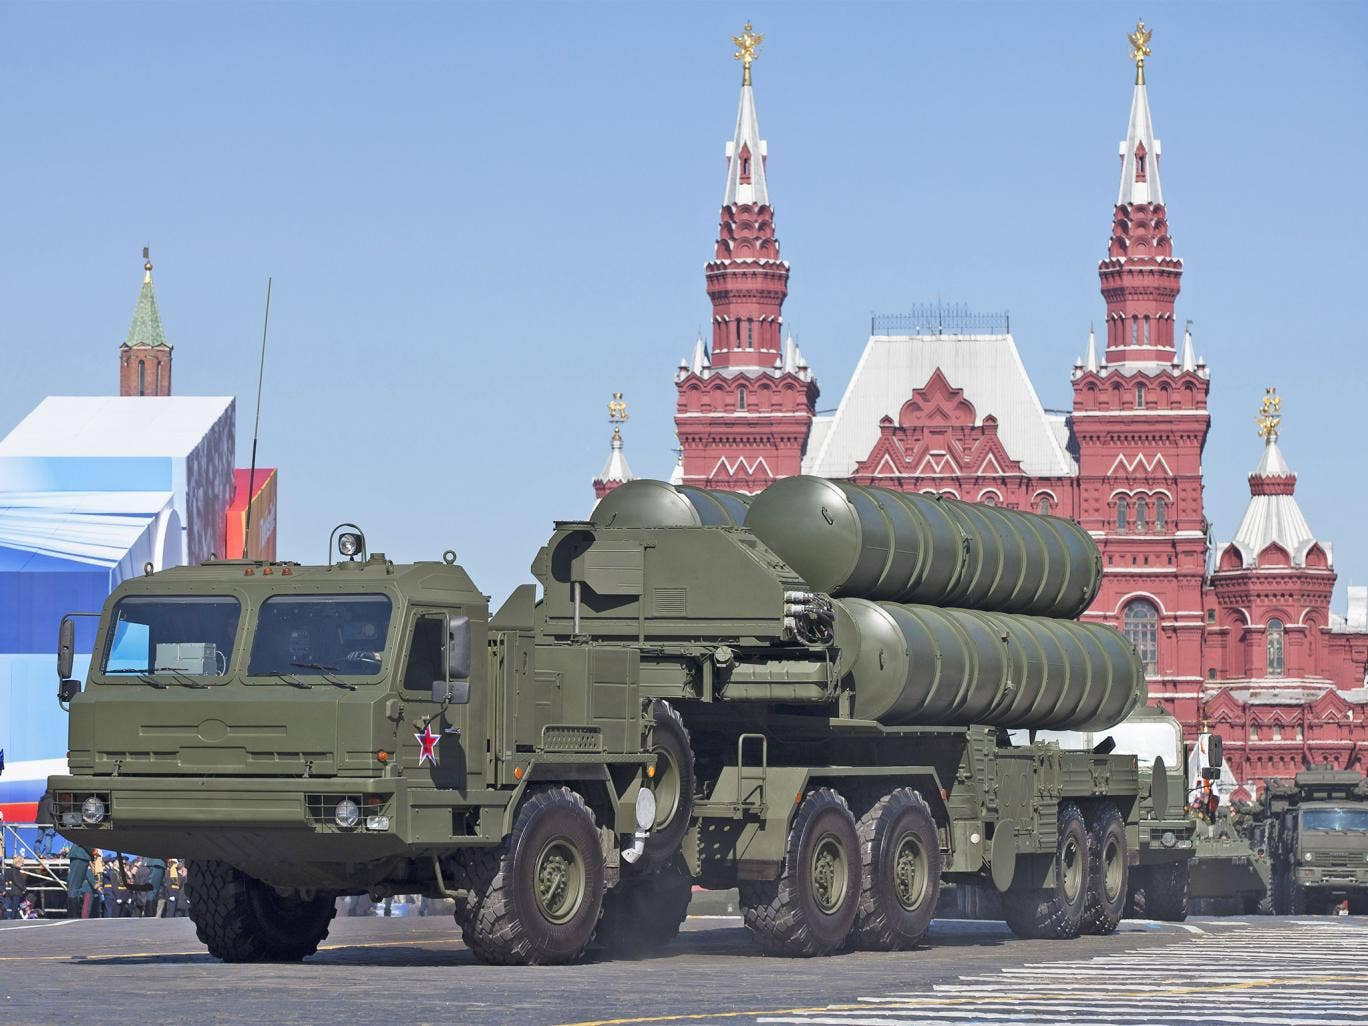 Russia's S-400 Missile and Putin's Iron Dome